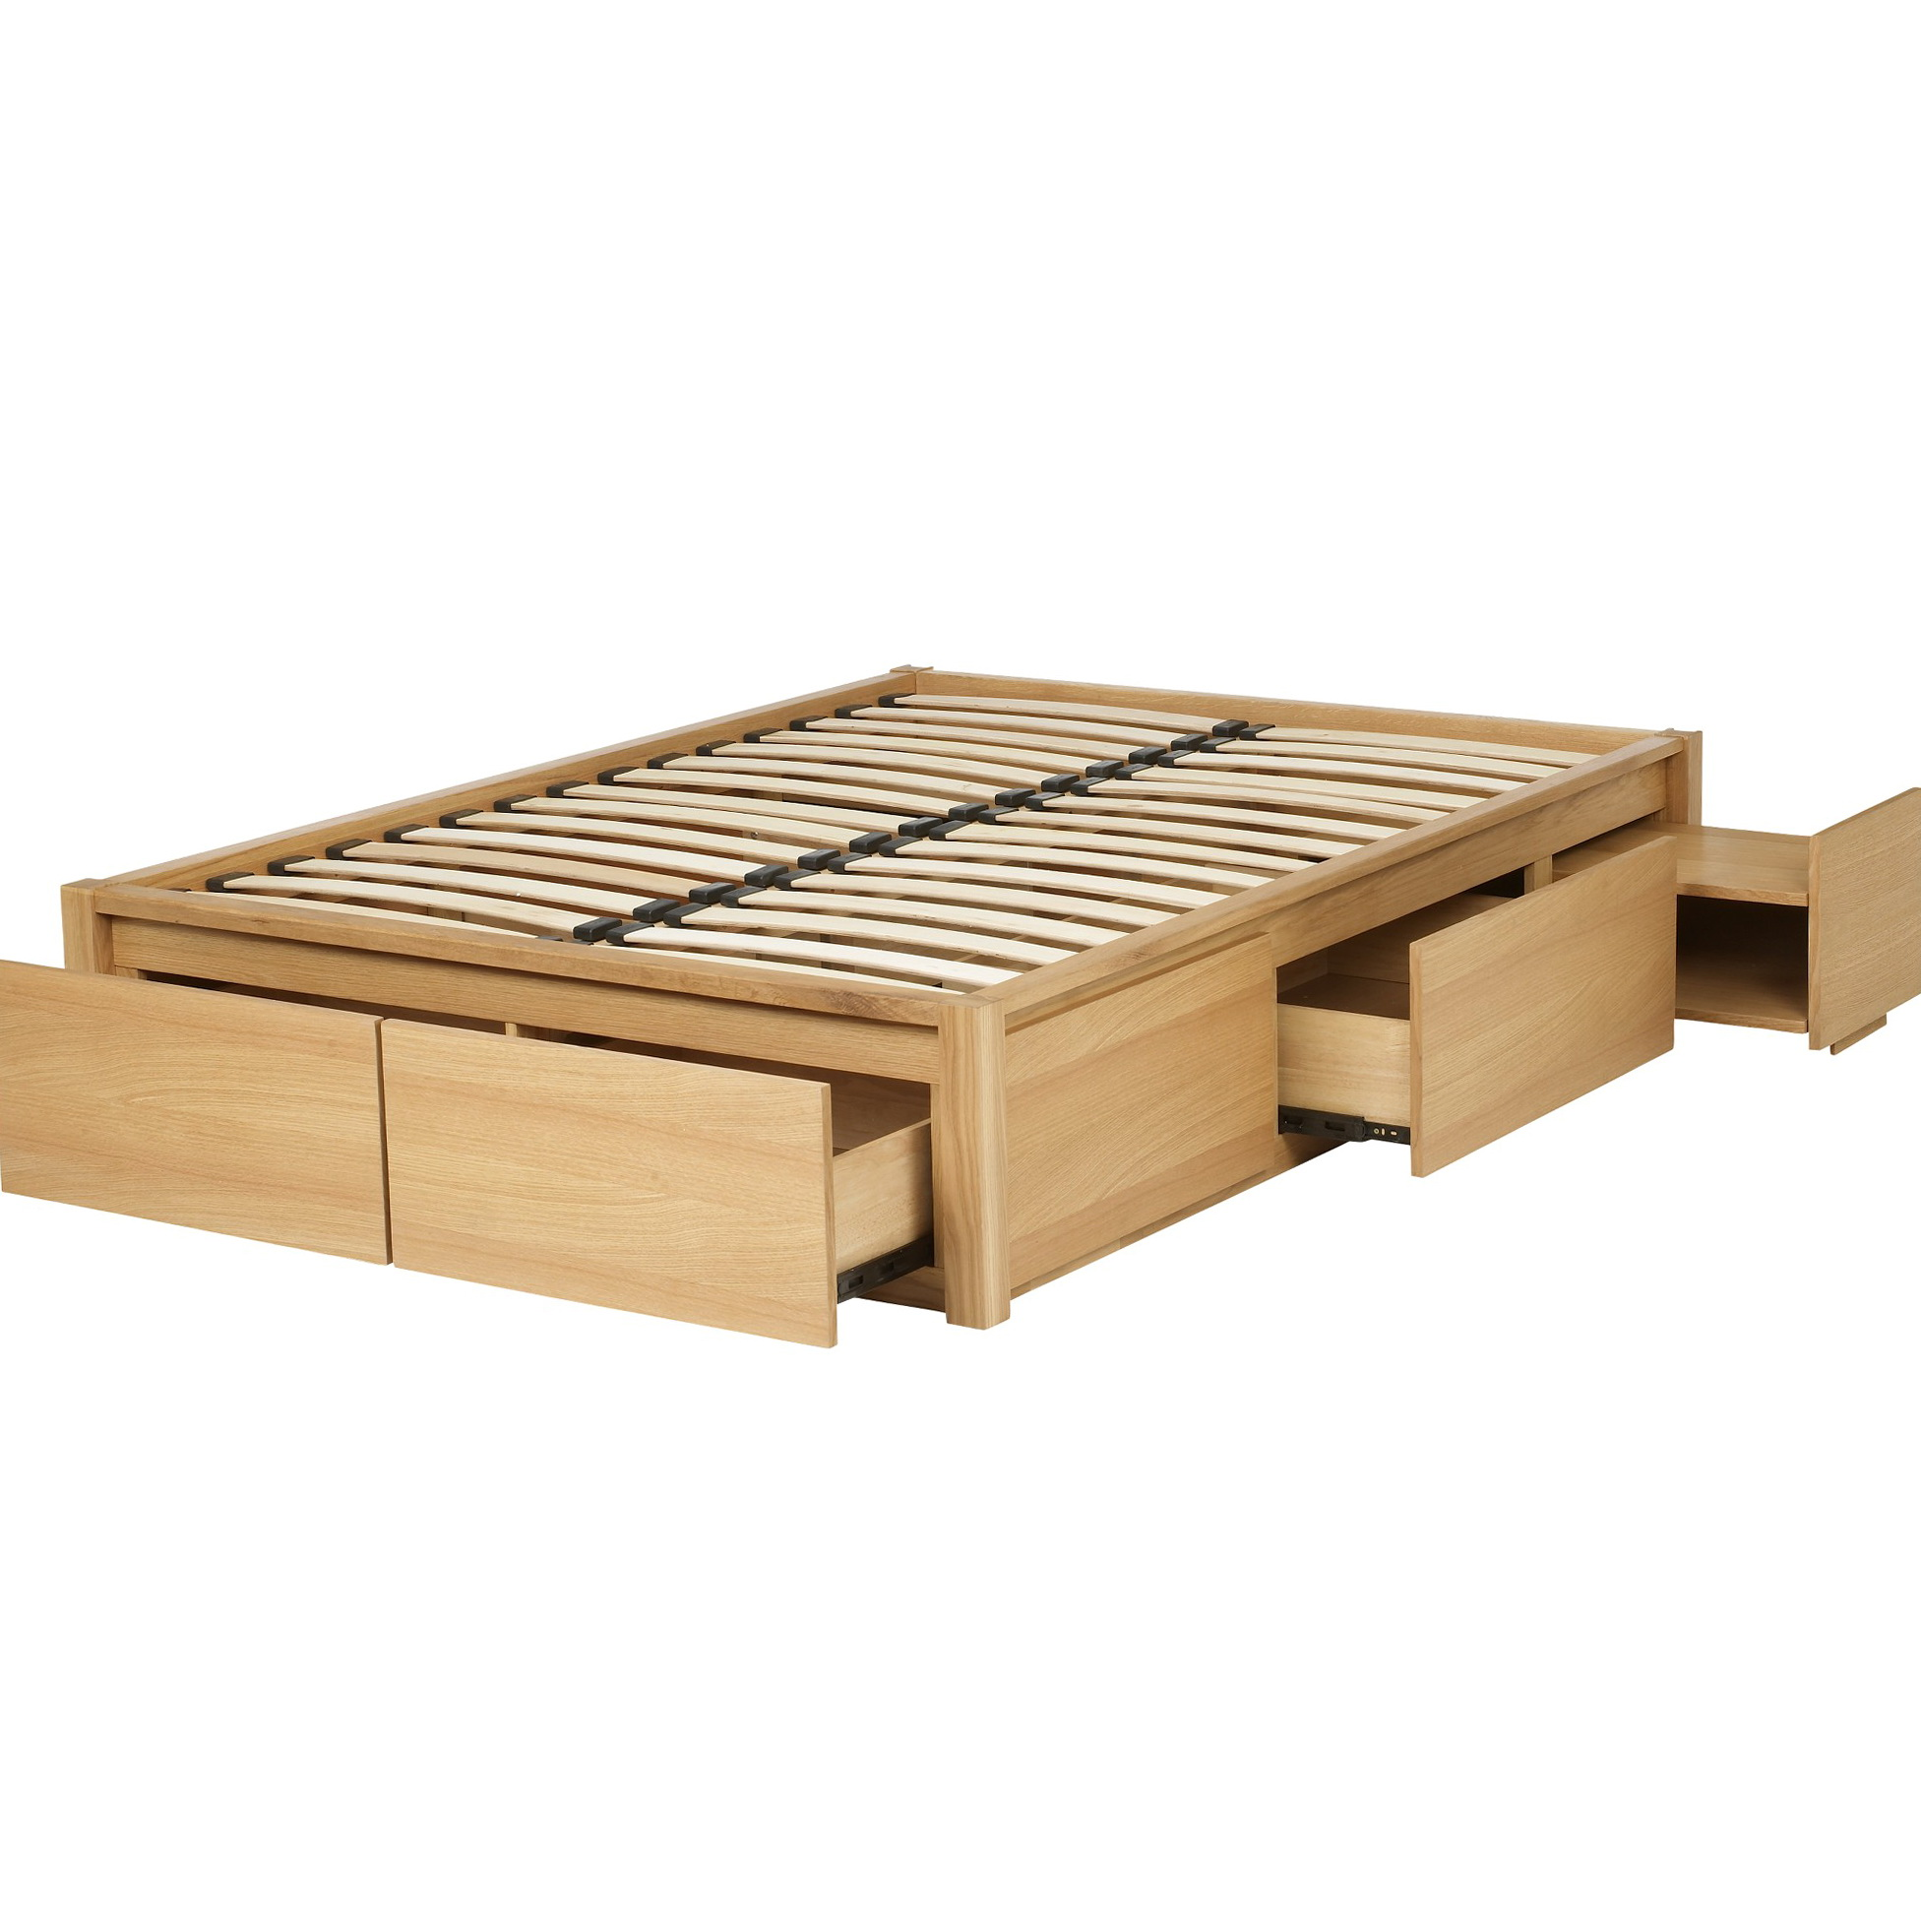 Low Platform Beds With Storage